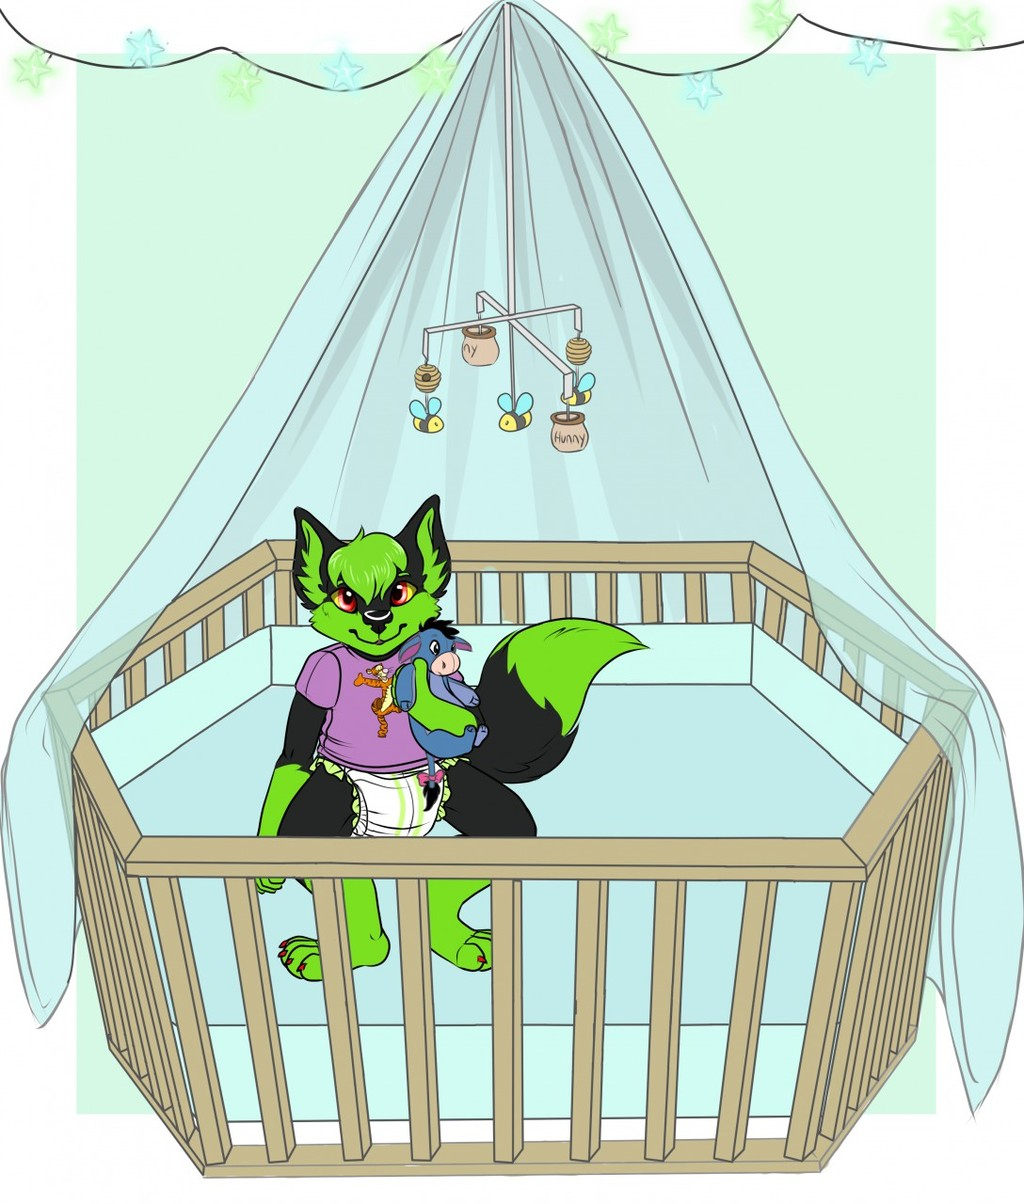 Sonar's Crib Time - By Rileykit